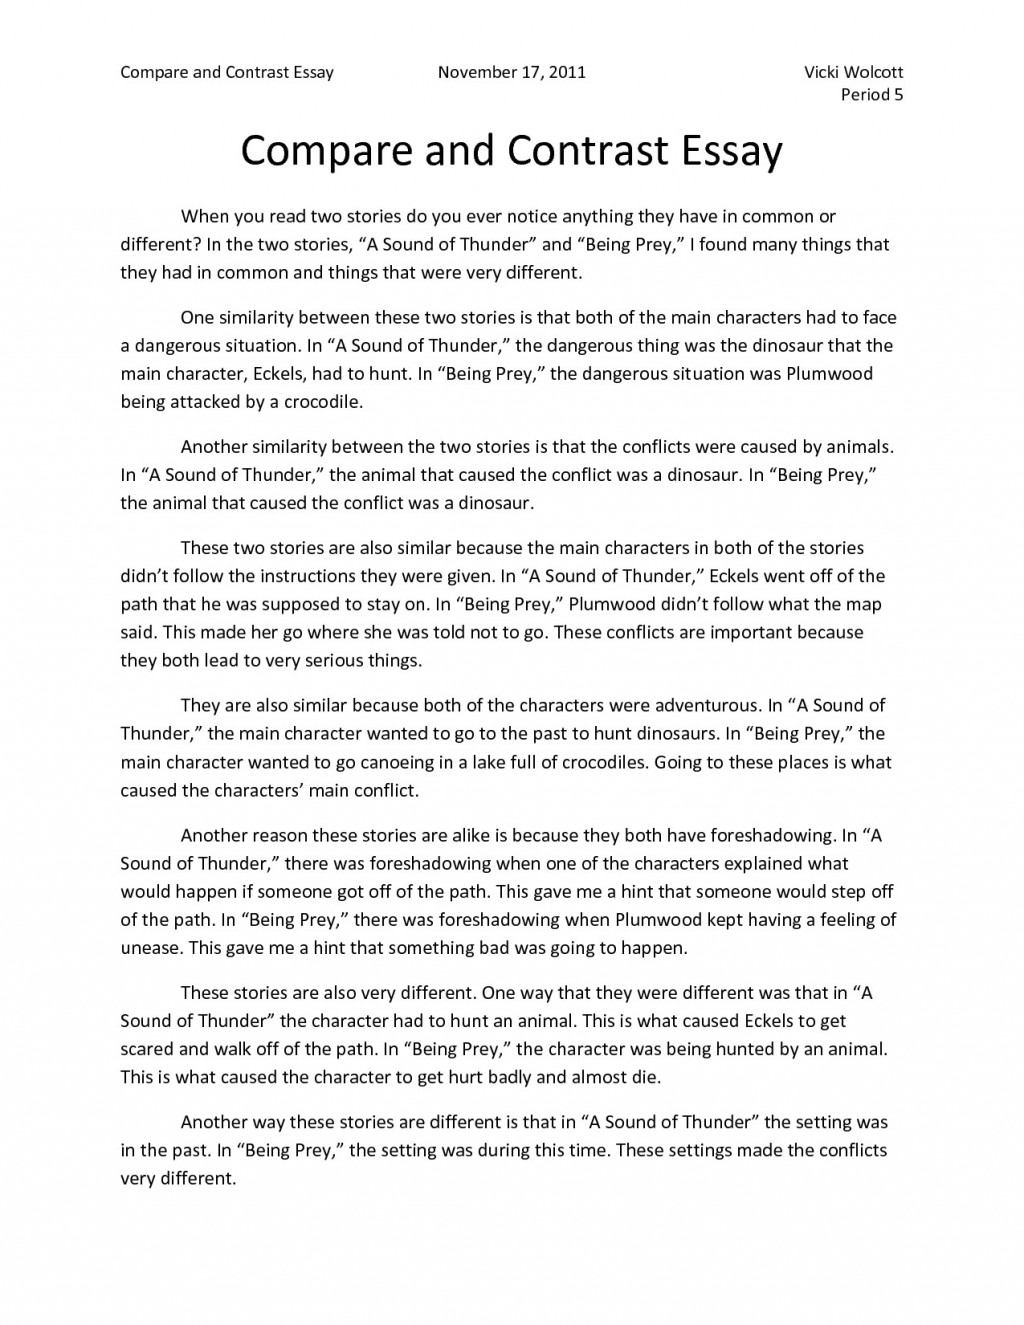 006 Comparing And Contrasting Essay Example Satire Examples Of Comparison Contrast Essays Com How To Write Outstanding A Compare Outline Powerpoint Introduction Large